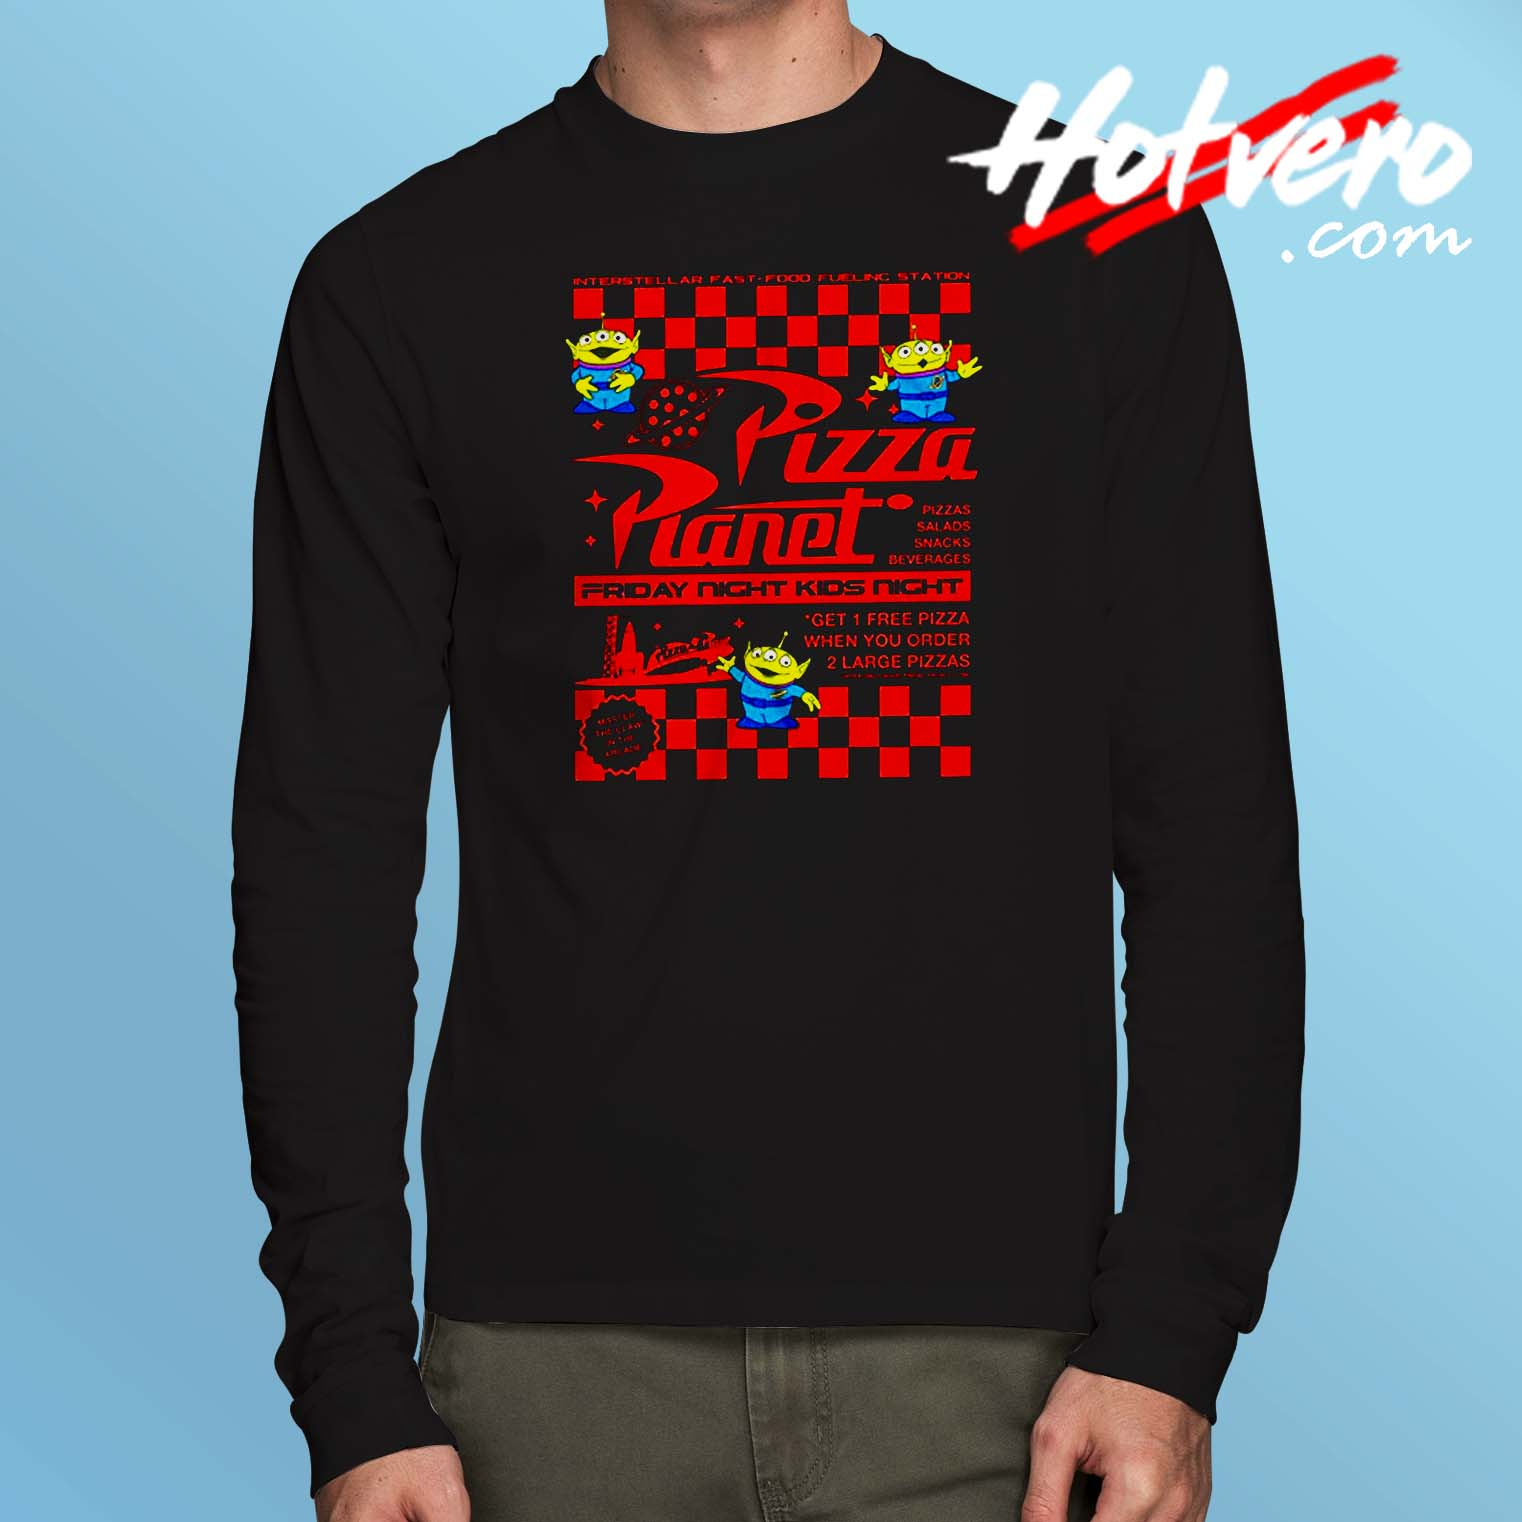 d7db2fea7 Toy Story Pizza Planet Long Sleeve T Shirt - Hotvero.com